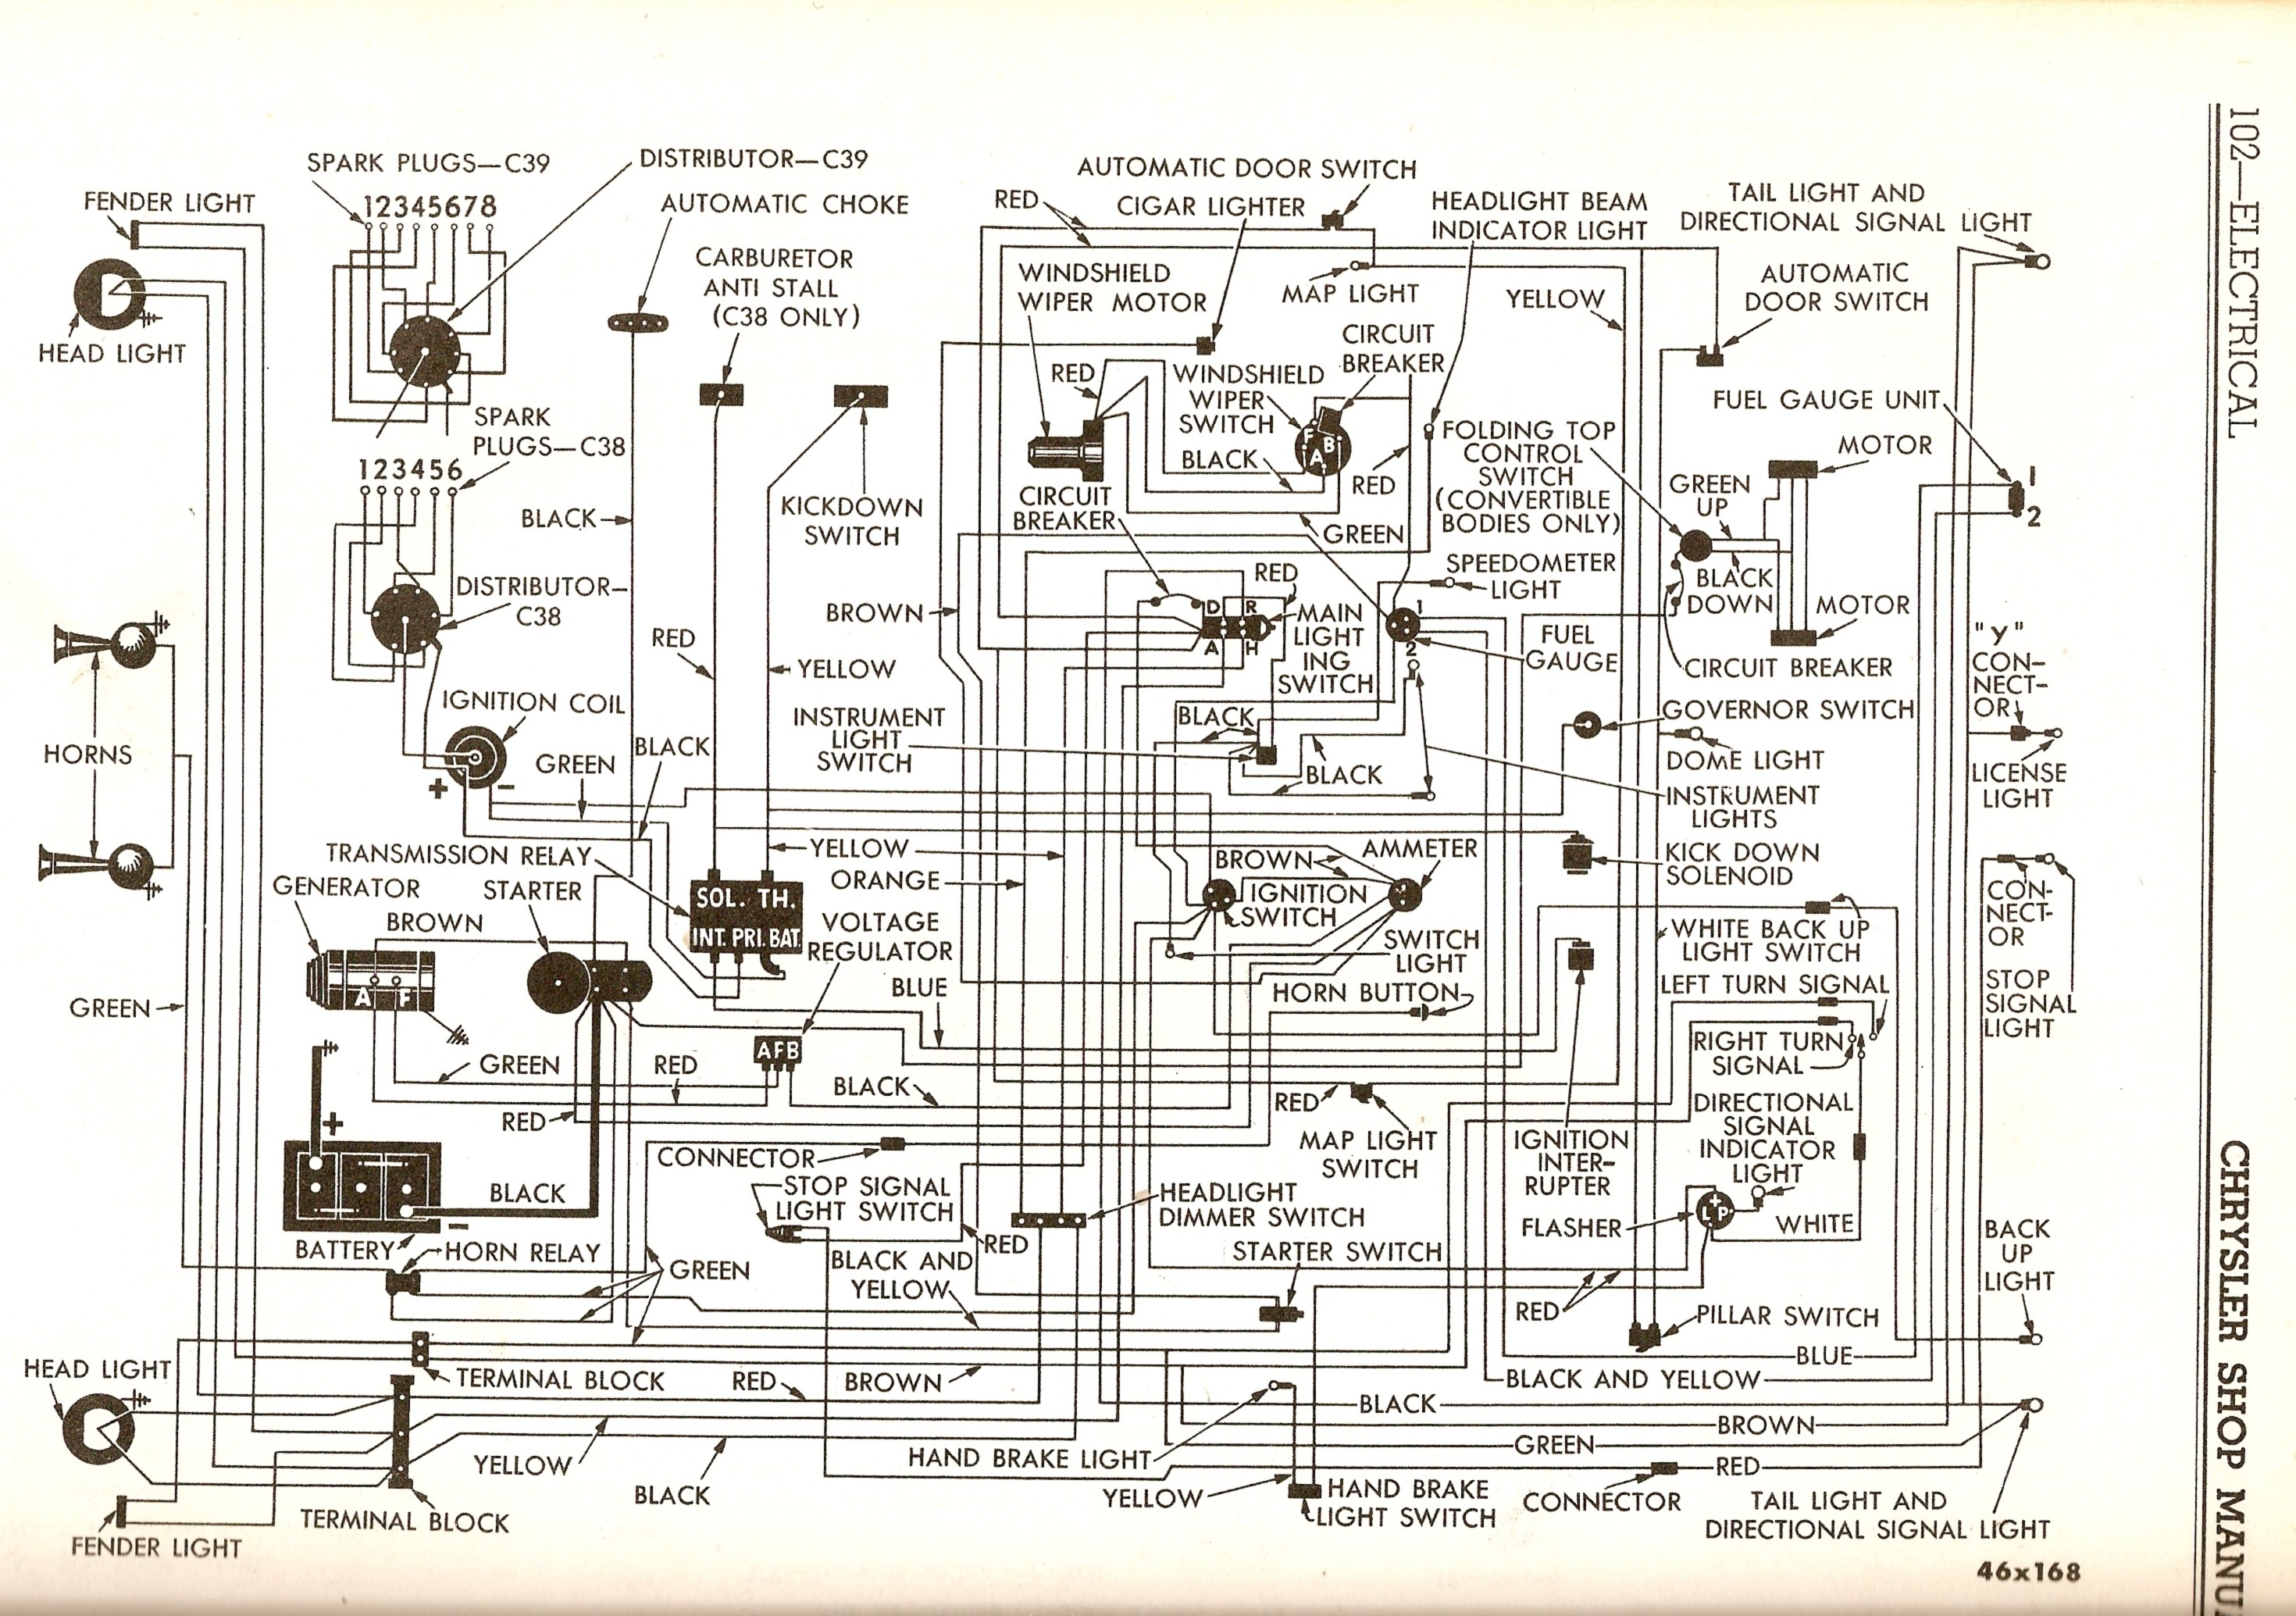 1954 Chrysler Wiring Harness Example Electrical Diagram 1968 1970 B Body Restomod System New Yorker Rh Huntervalleyhotels Co Radio 200 Speedometer